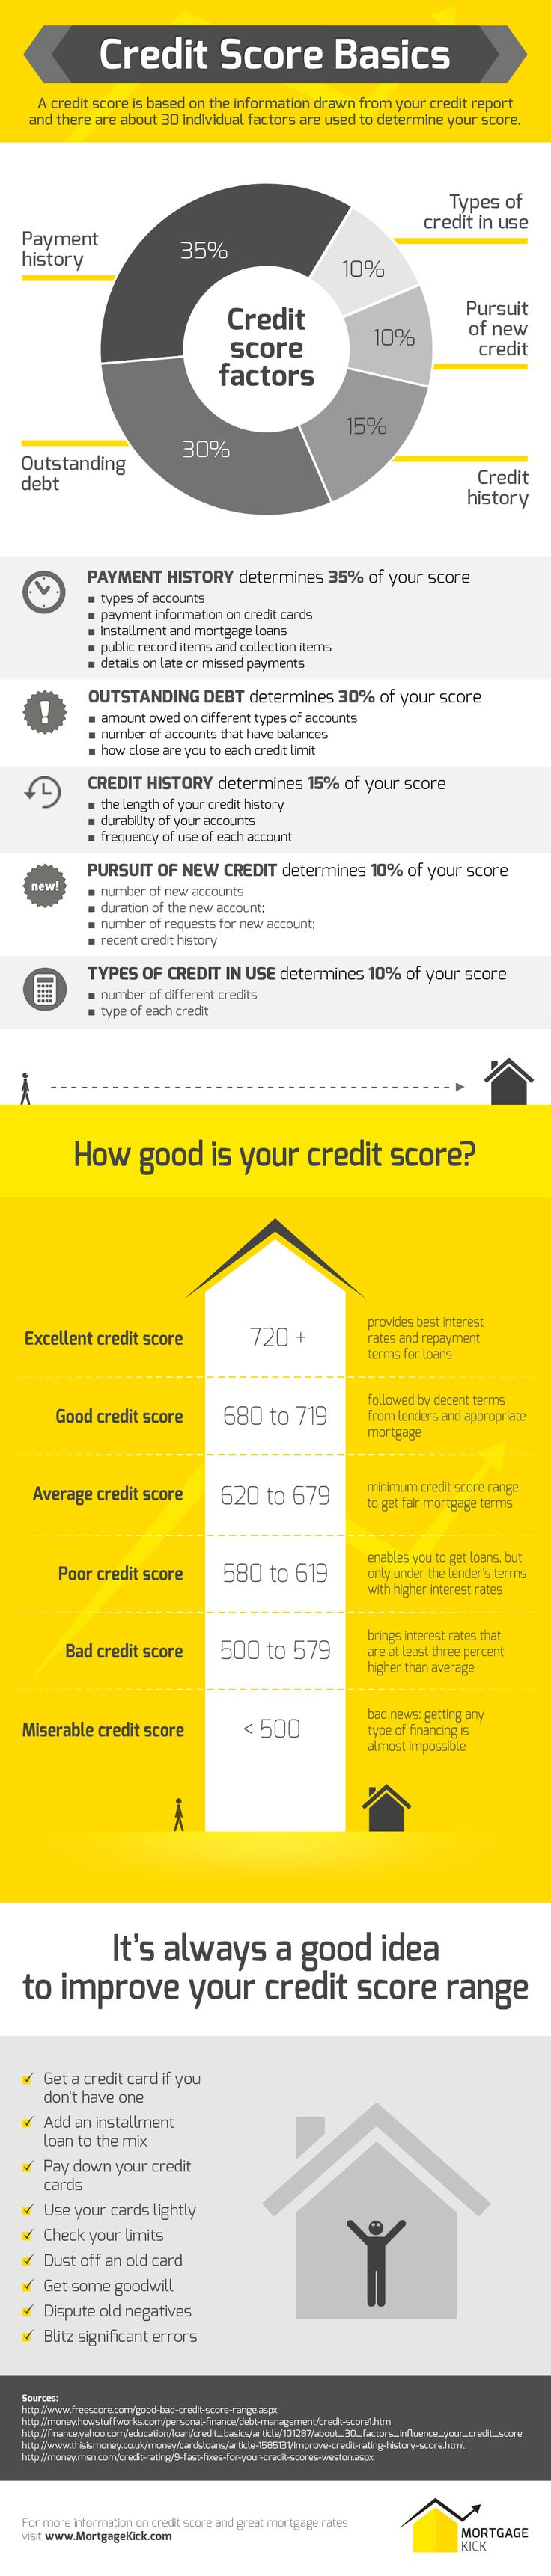 Credit Score Basics: The most important factors when it comes to a loan and tips on how you can keep a high credit score to get approved for a mortgage.